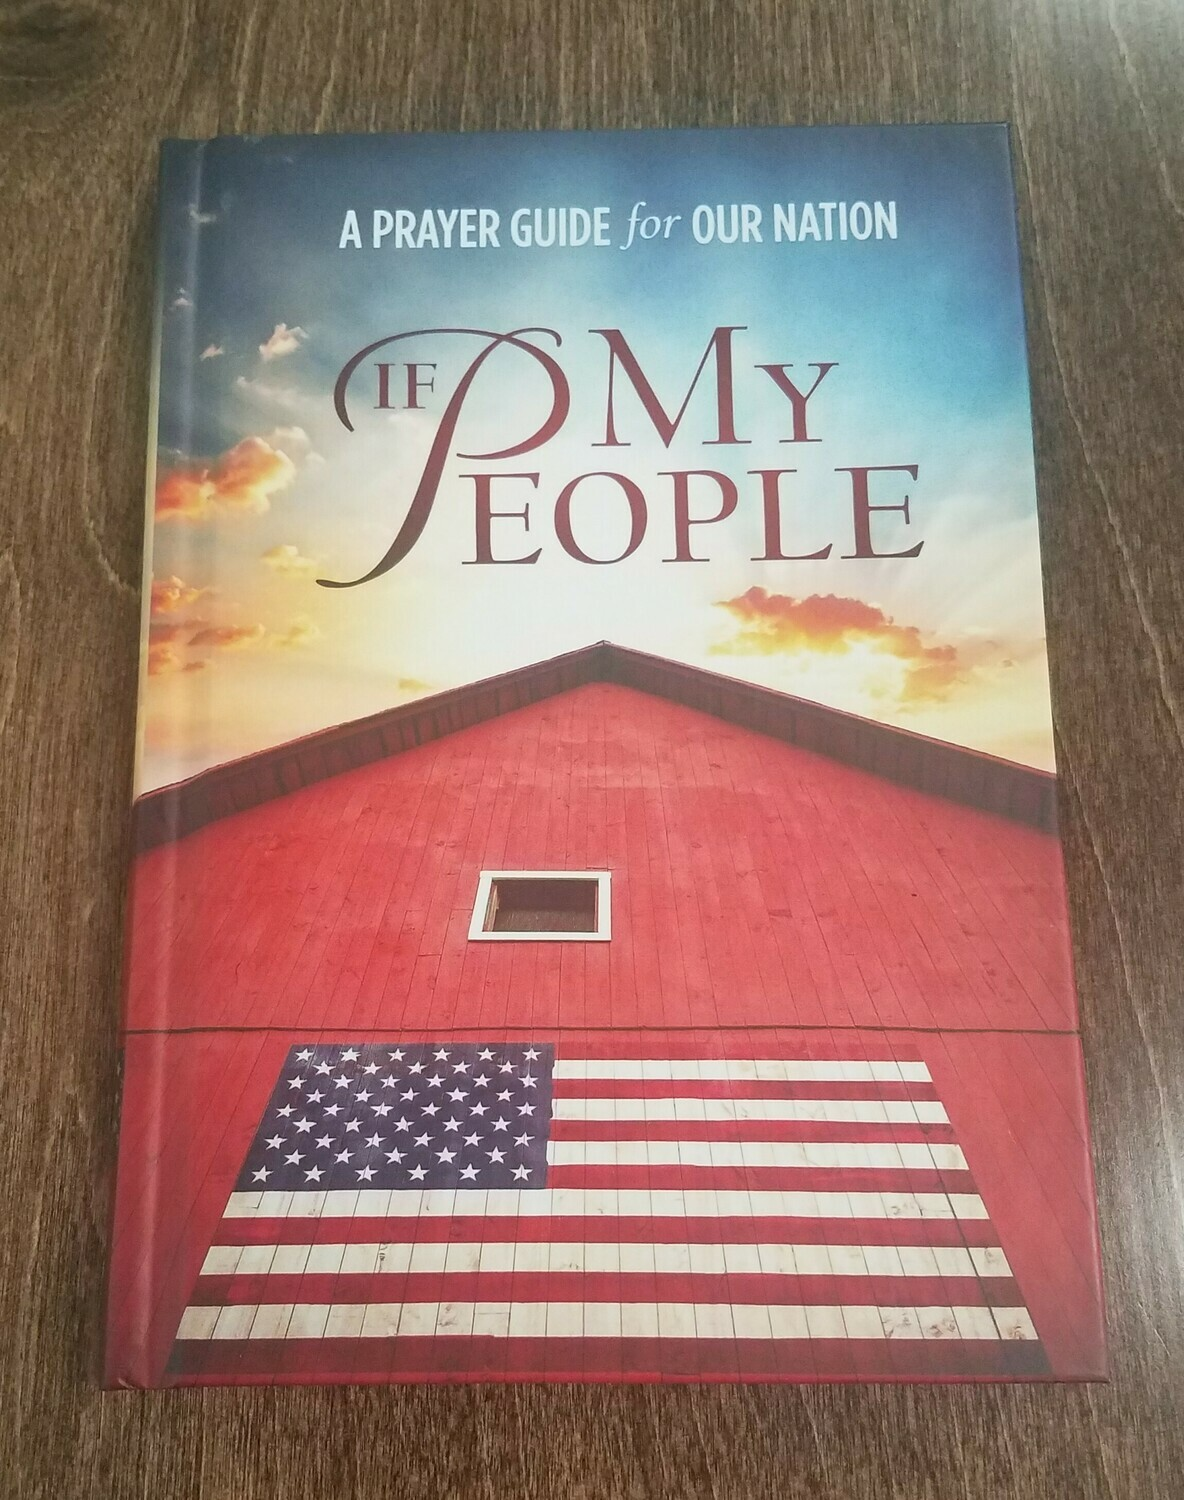 If My People: A Prayer Guide for Our Nation by Thomas Nelson